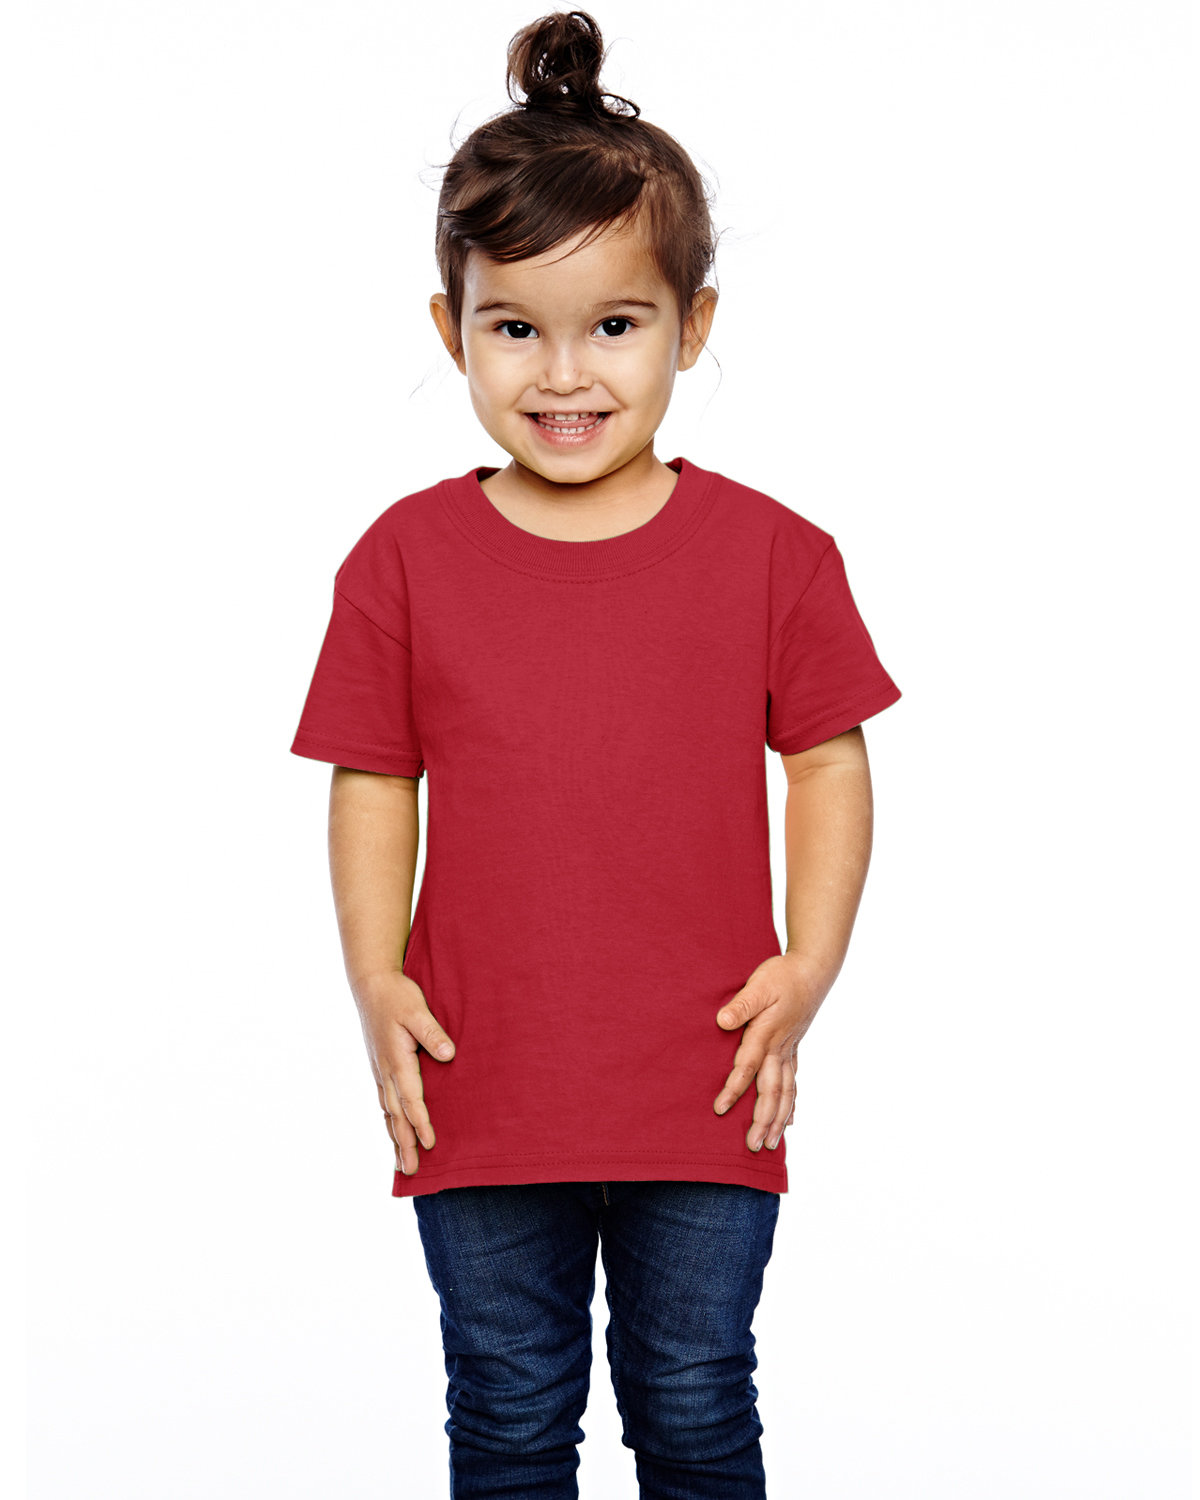 Fruit of the Loom Toddler HD Cotton™ T-Shirt TRUE RED